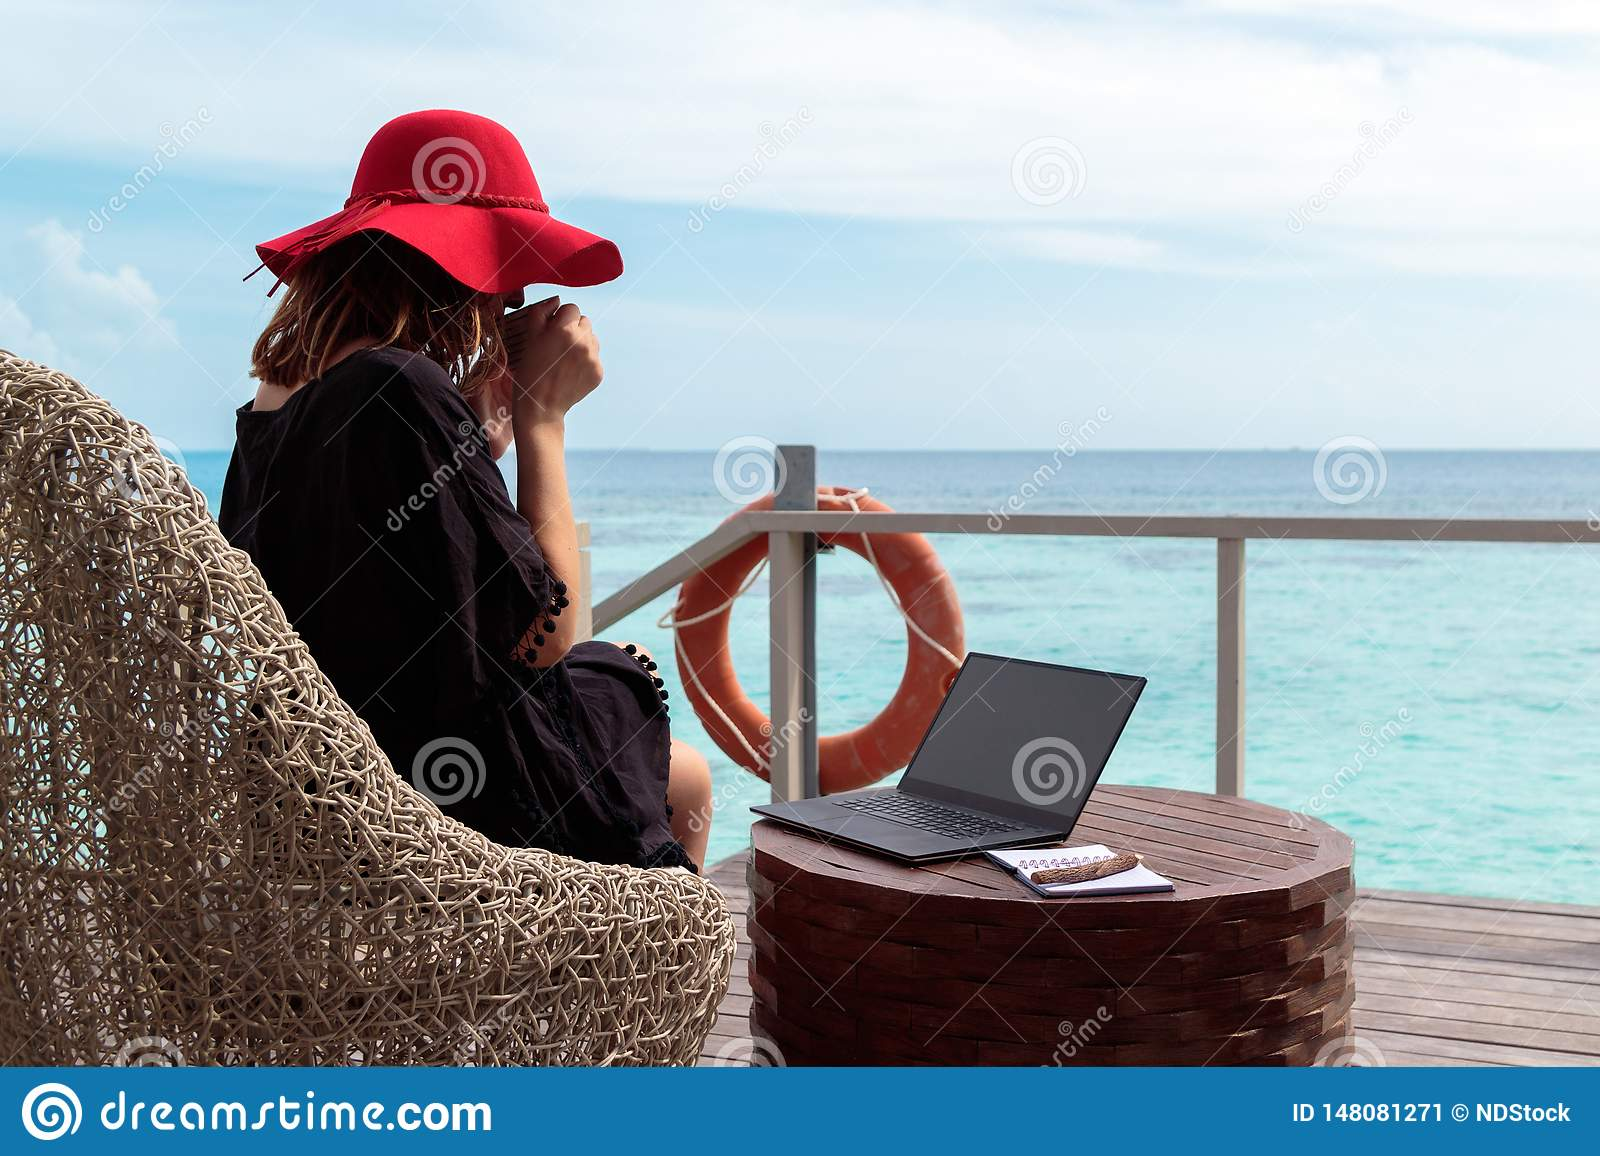 Young woman with red hat drinking coffee and working on a computer in a tropical destination